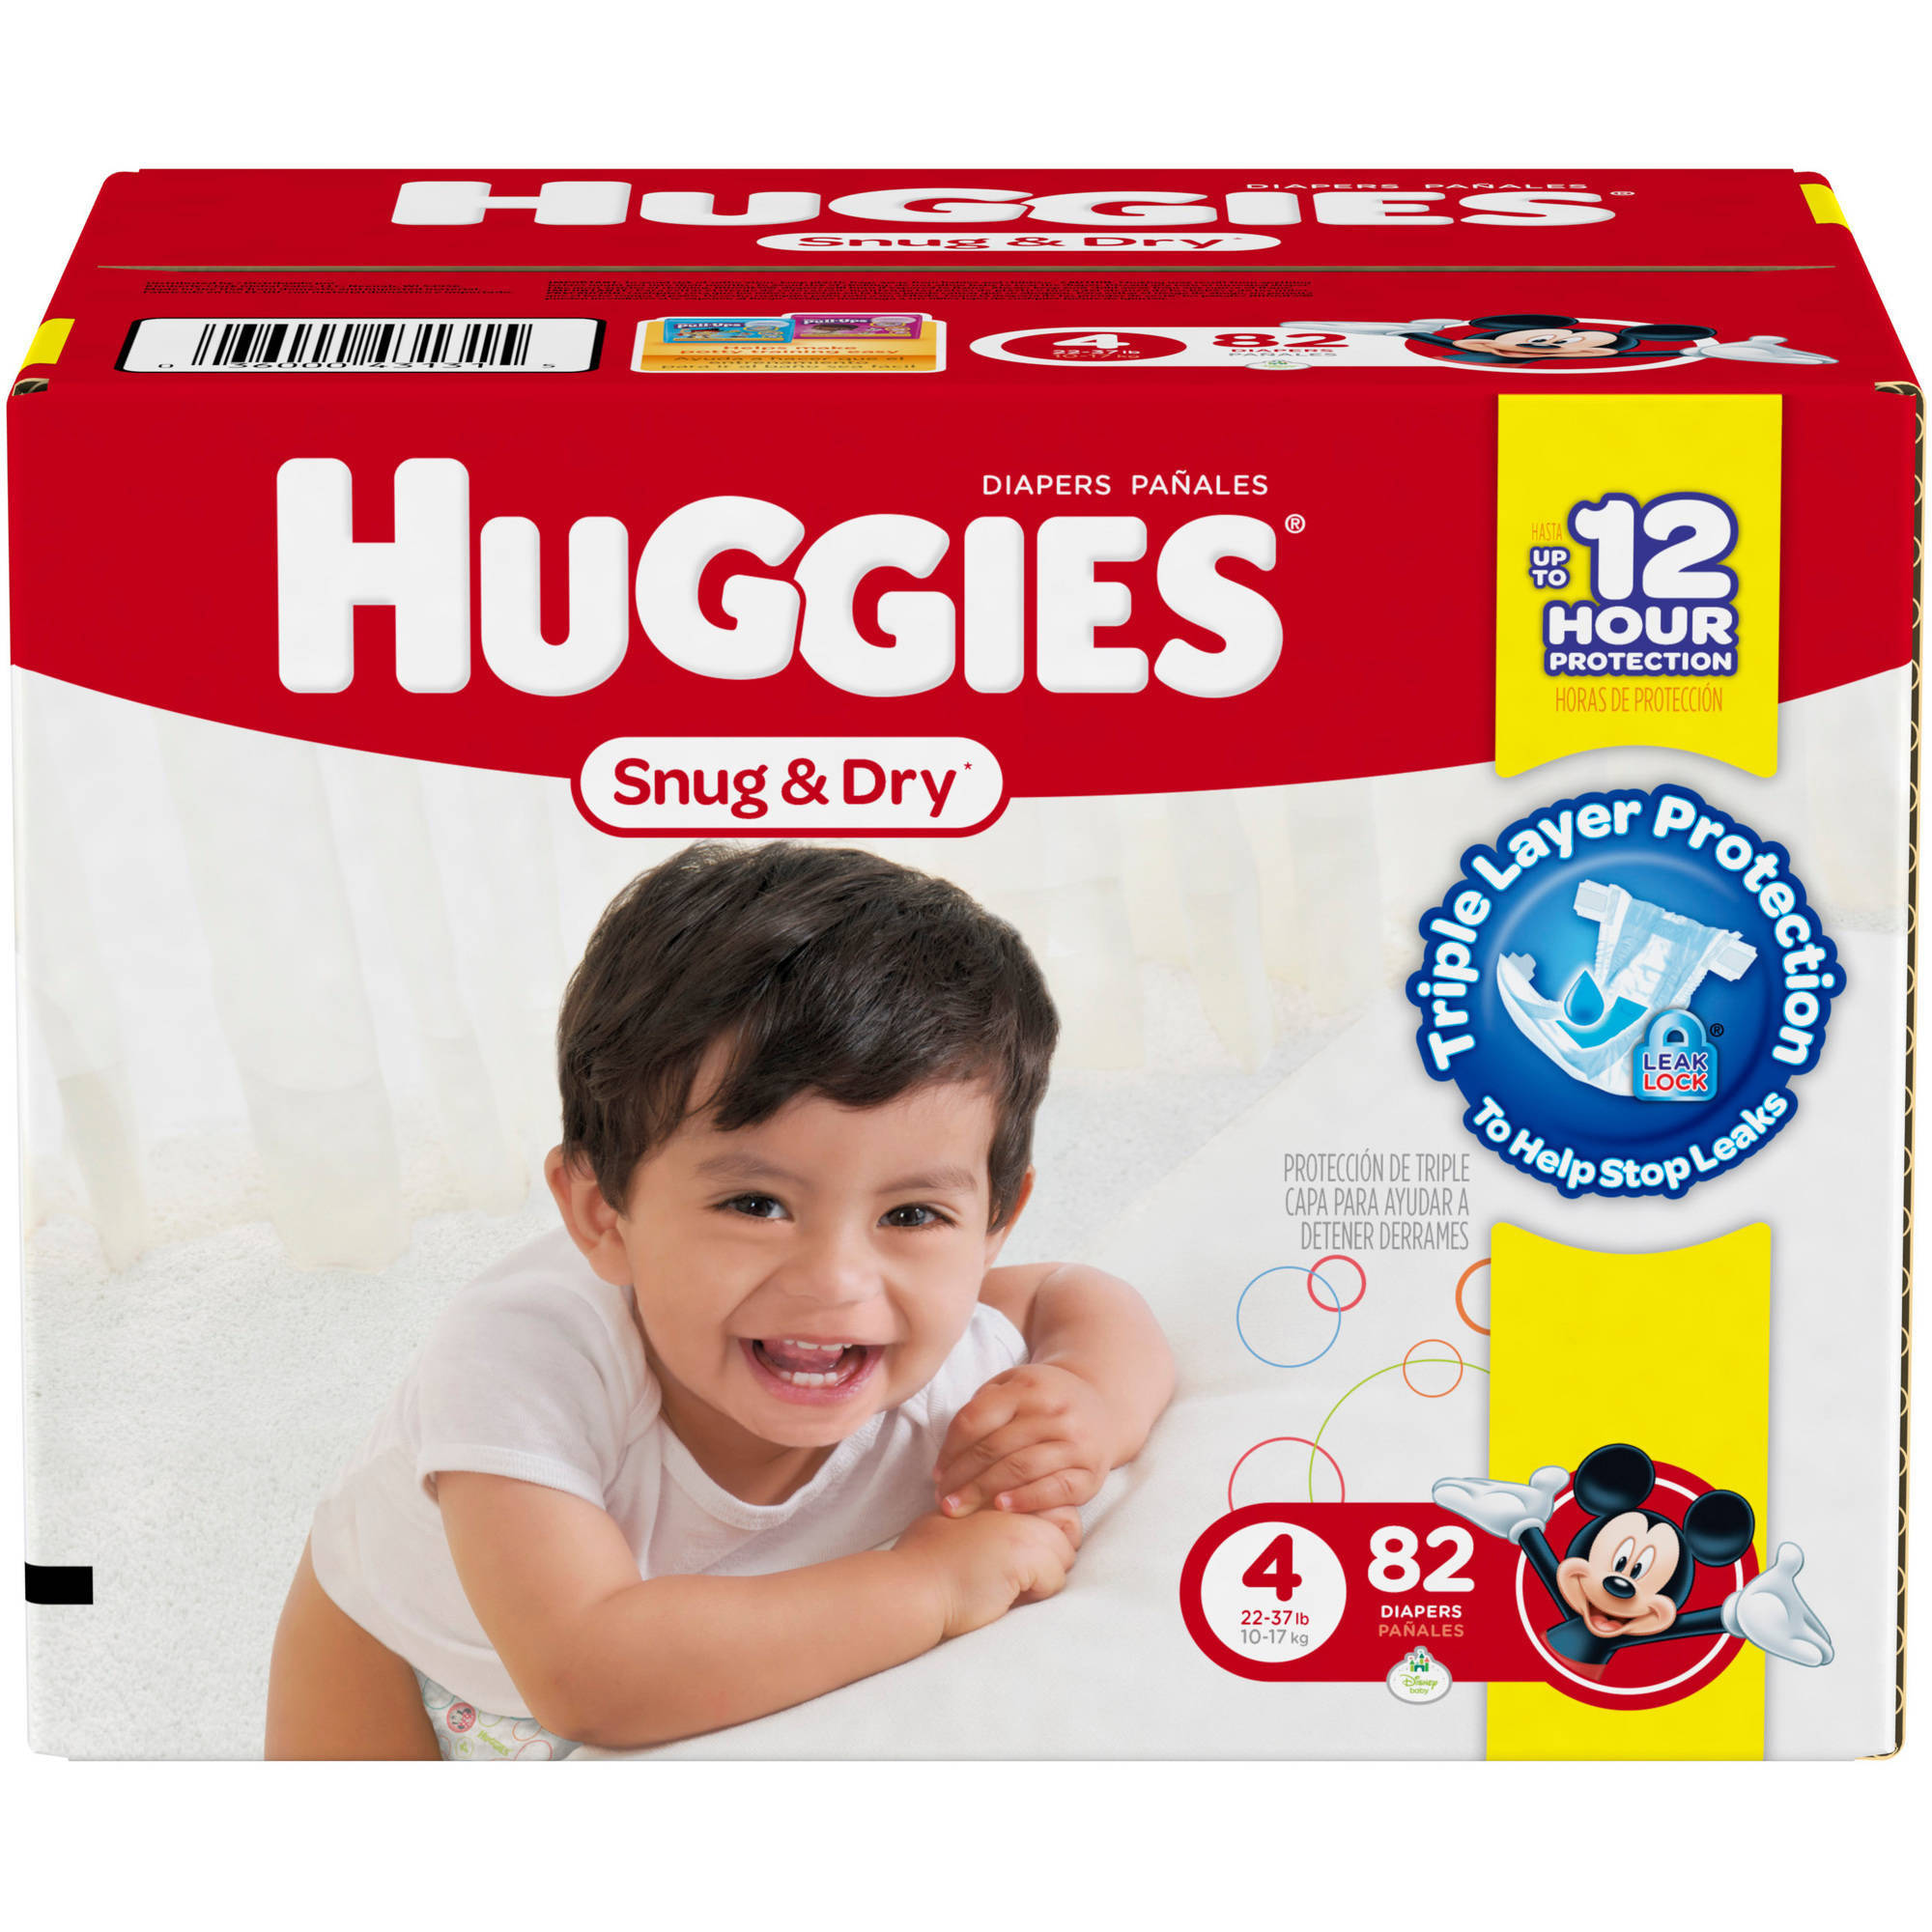 HUGGIES Snug & Dry Diapers, Size 4 (Choose Diaper Count)